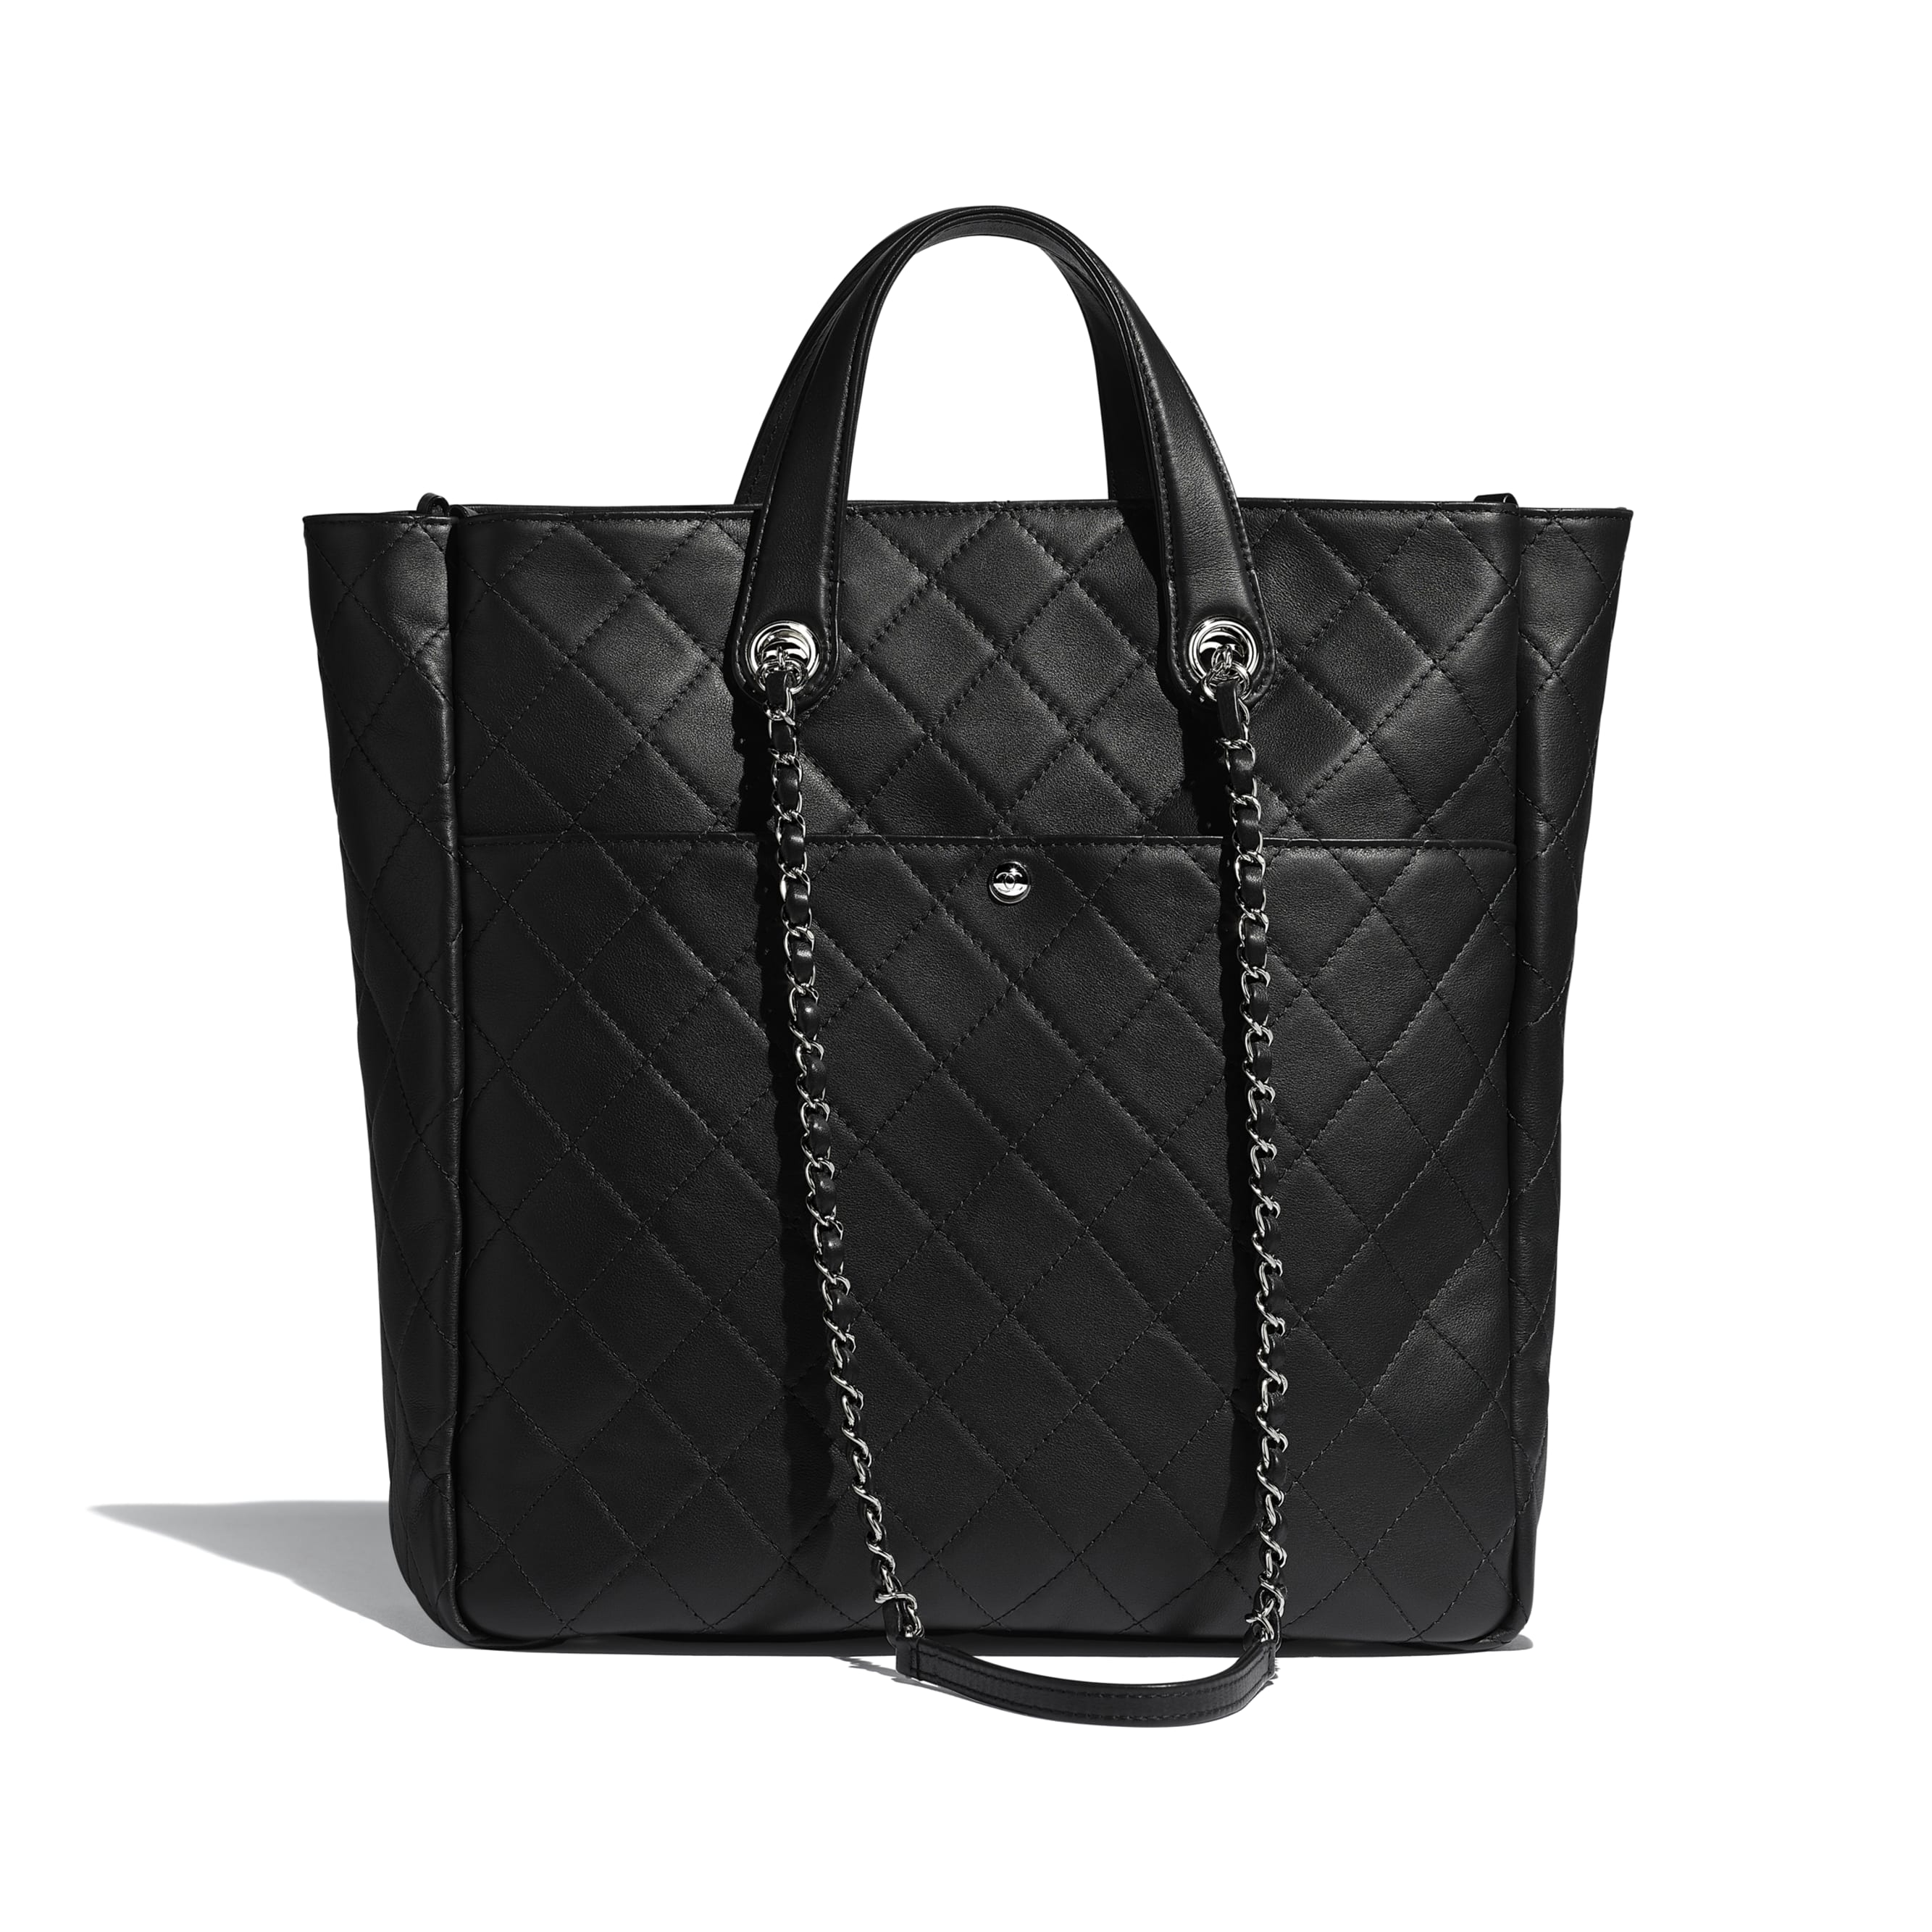 Large Zipped Tote - Black - Calfskin & Silver Metal - Alternative view - see standard sized version